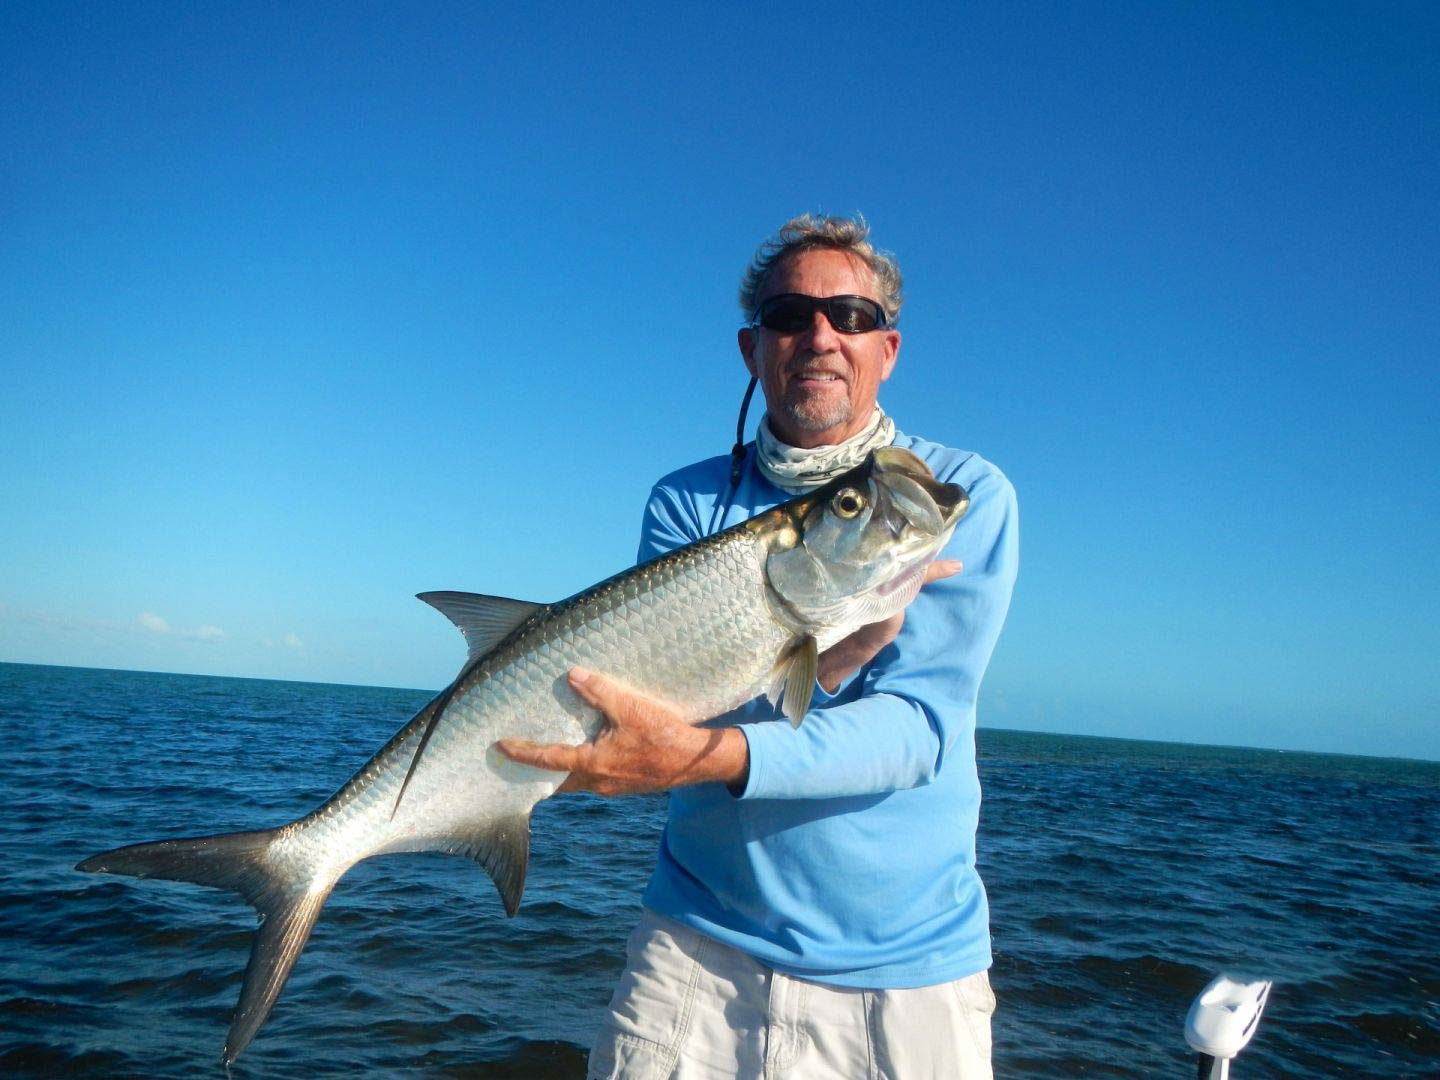 A man holding a Tarpon on a boat in the Florida Keys